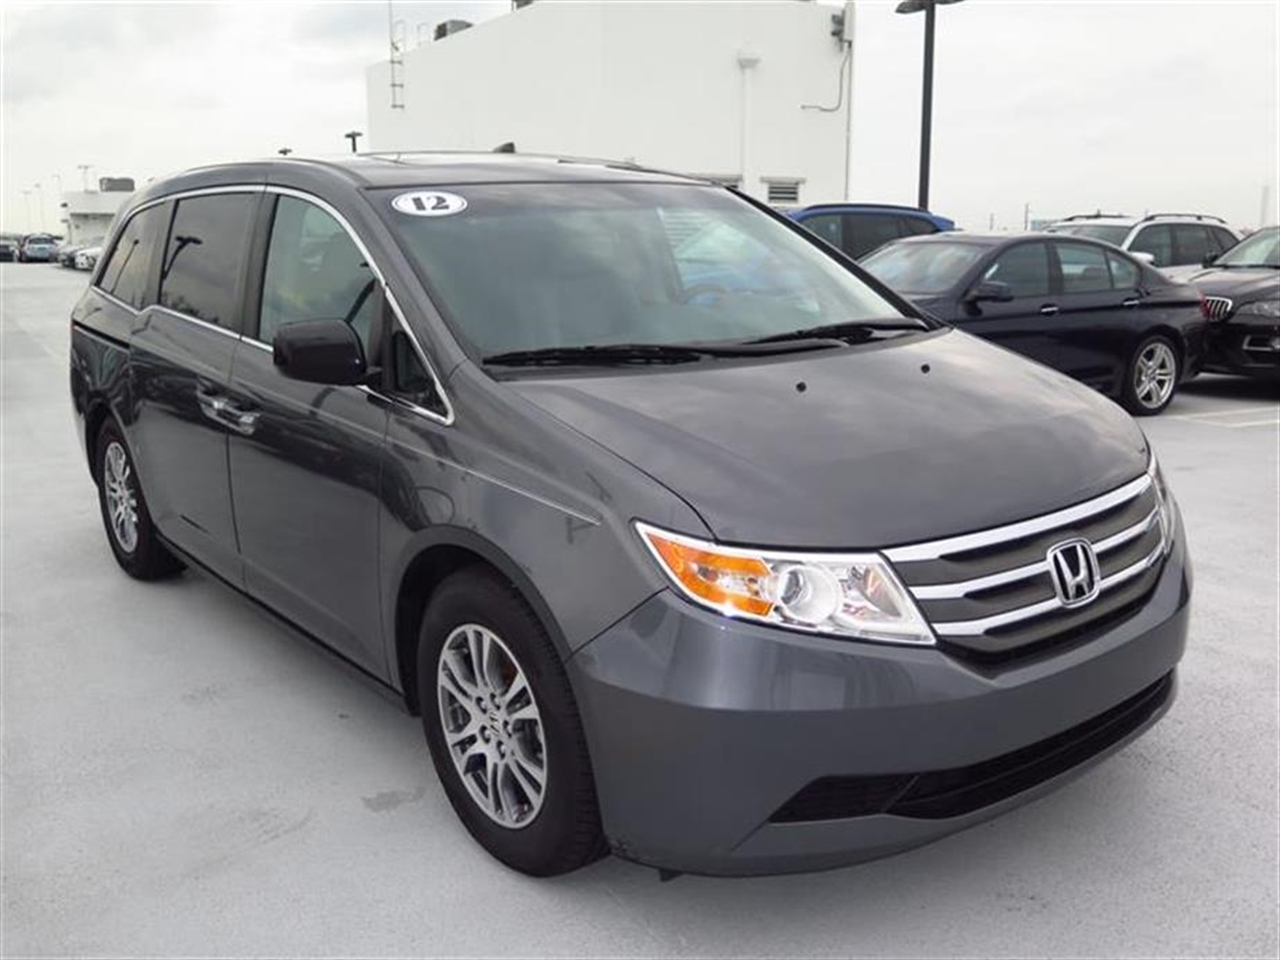 2012 HONDA ODYSSEY 5dr EX-L 31651 miles 15 cup holders 4 cargo area bag hooks 2-front  1-r